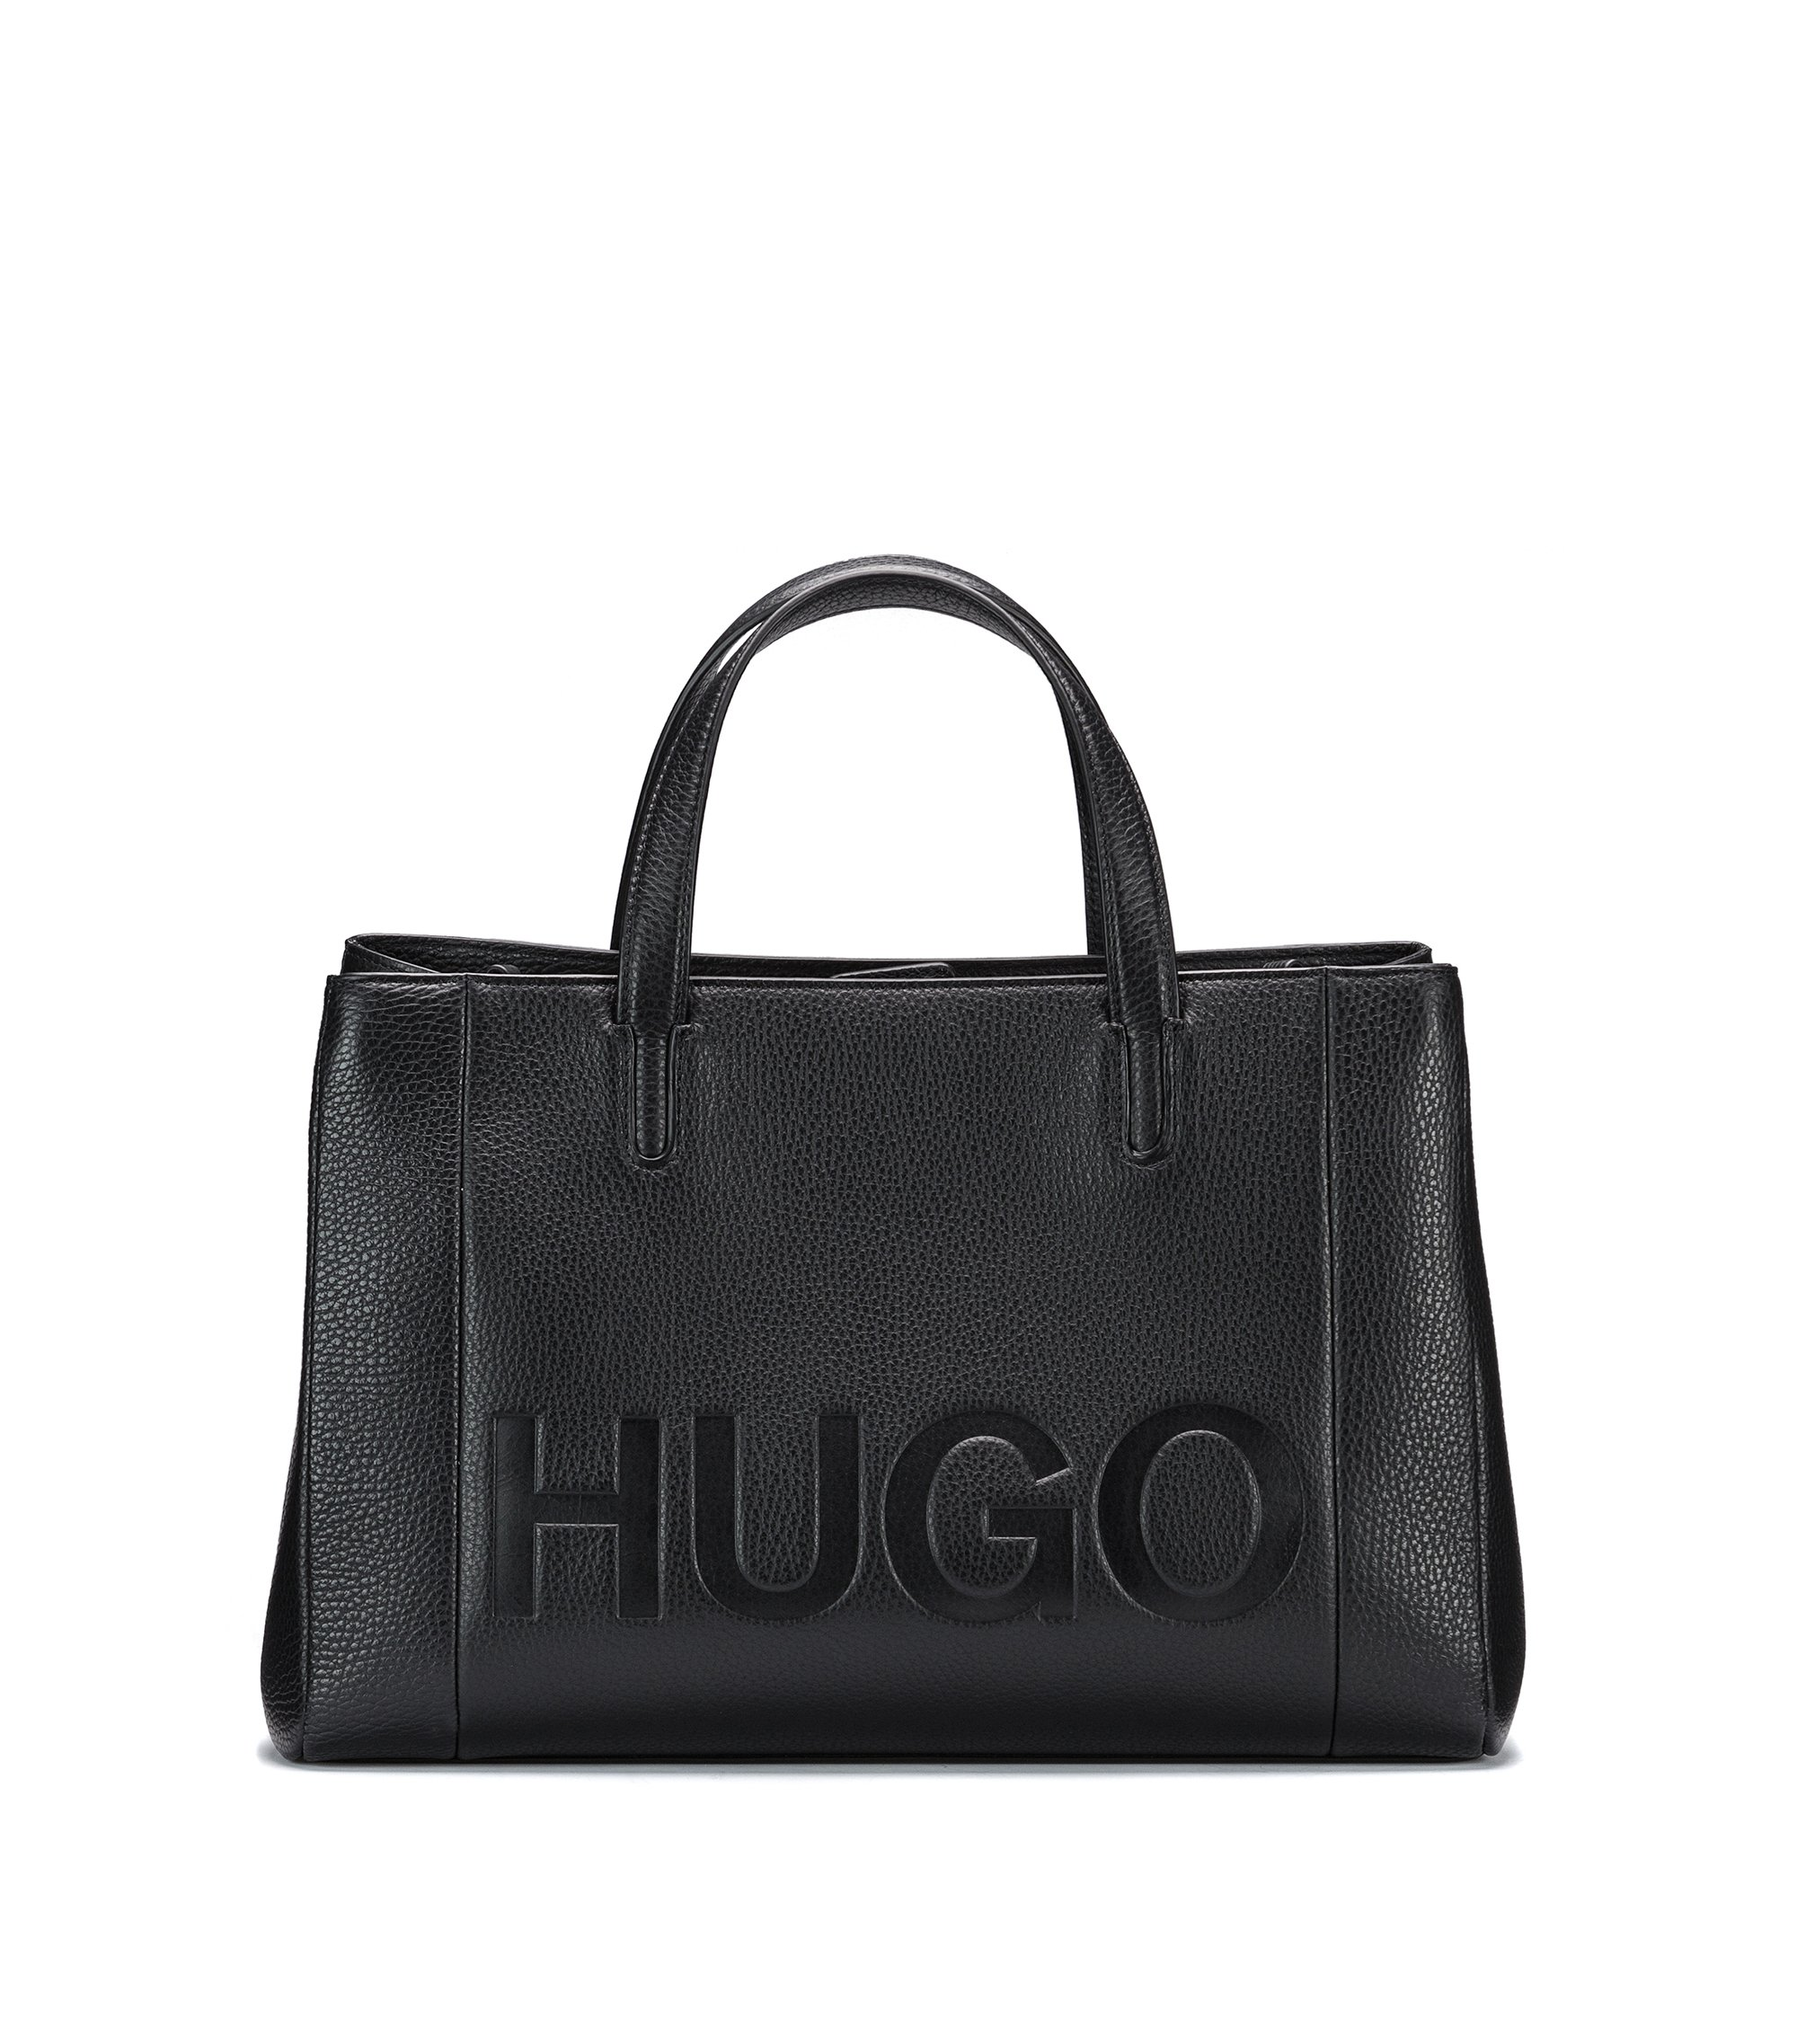 Leather tote bag with embossed logo, Black